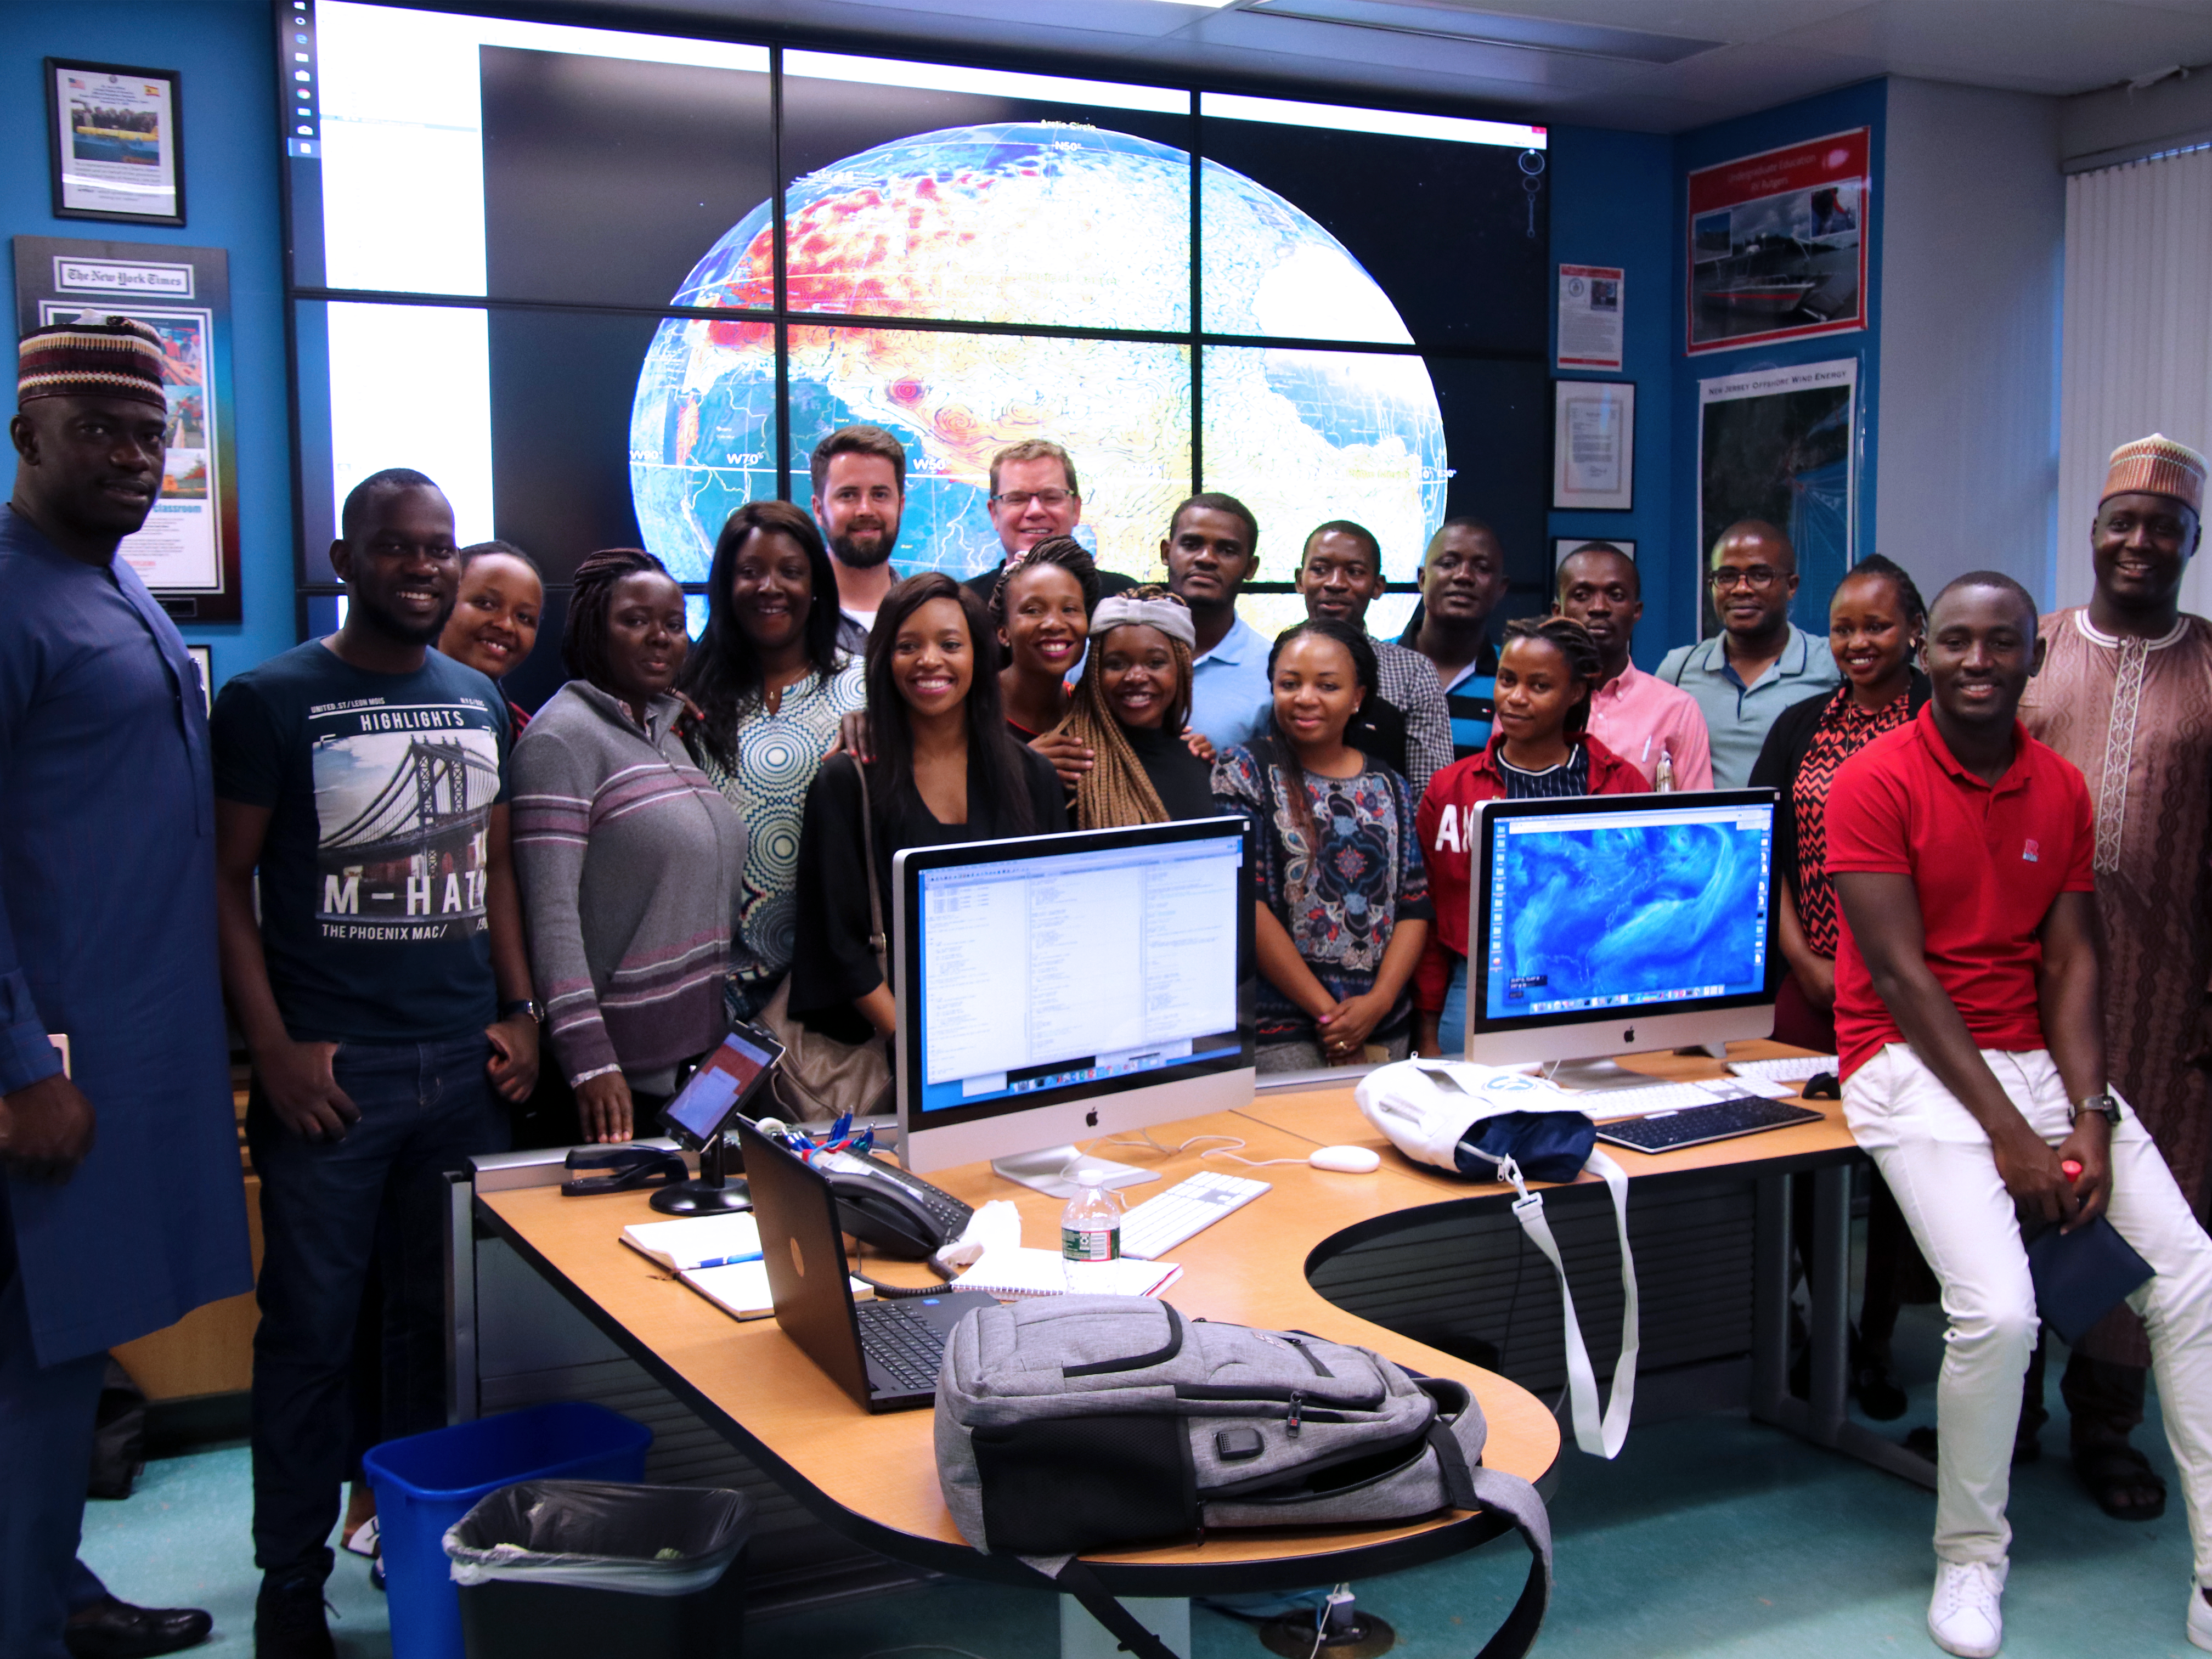 RUCOOL Hosts 16 Countries through the Mandela Fellowship